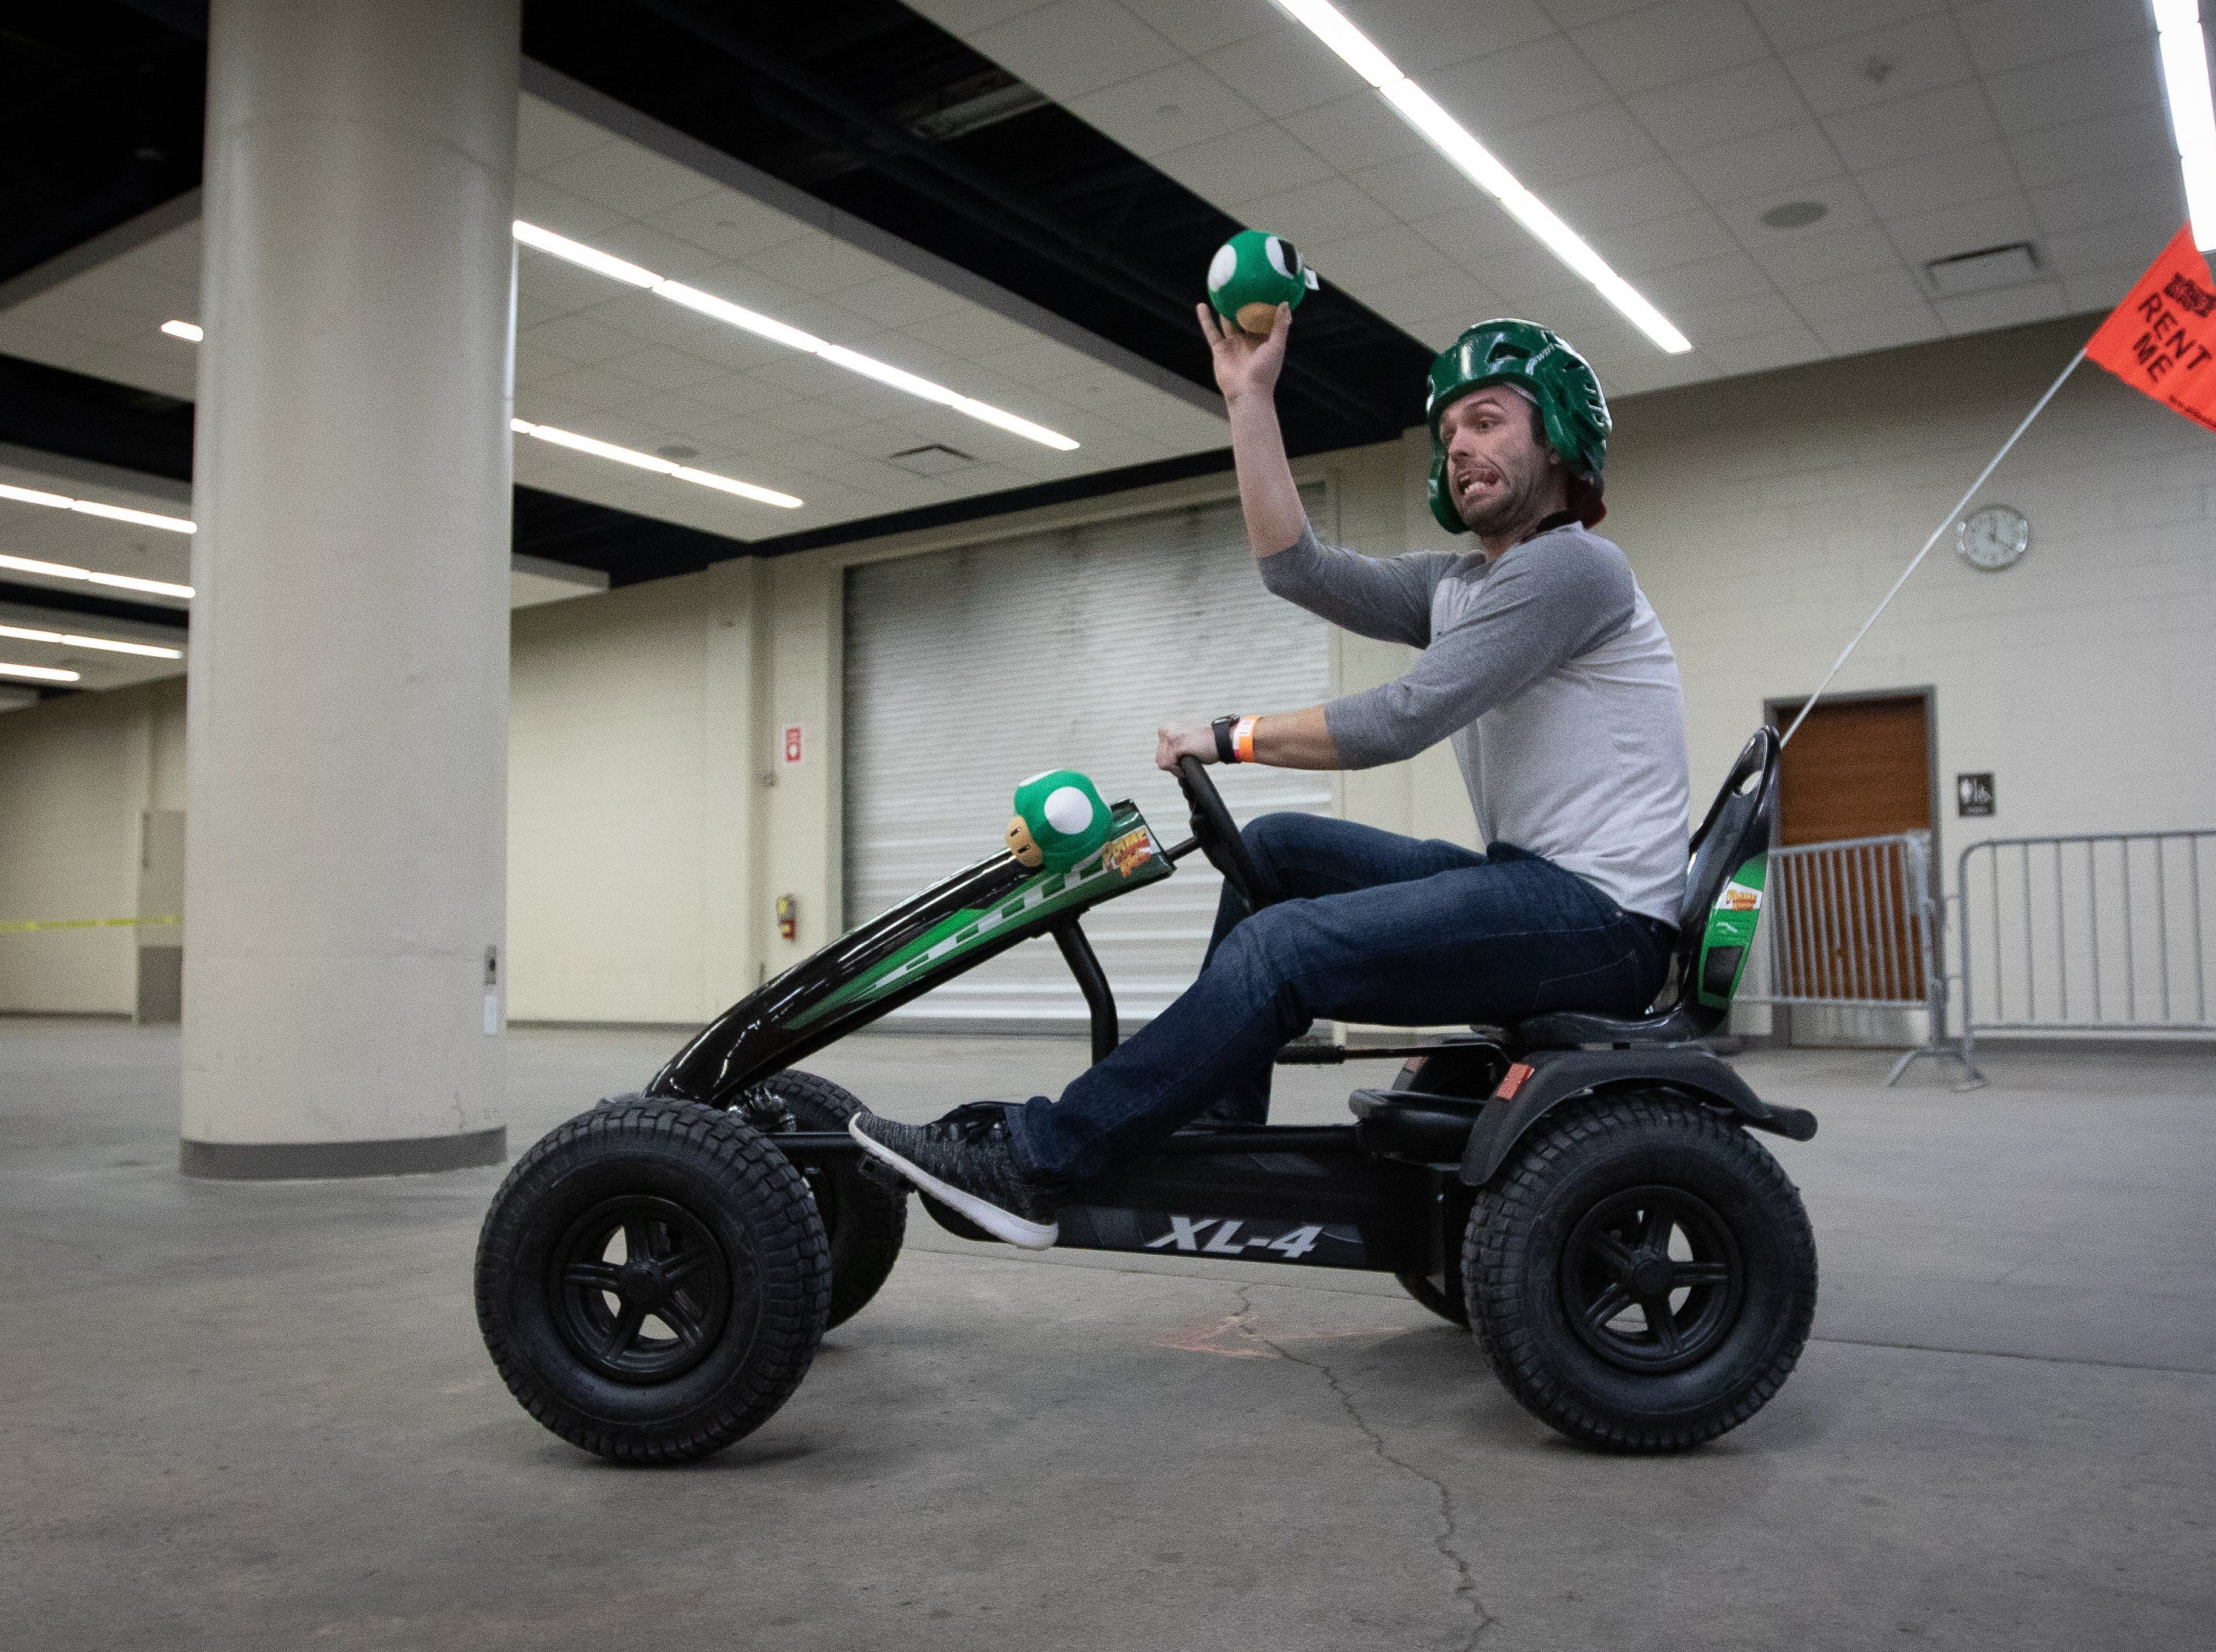 Jose Ruth, of Clive, participates in a go-kart race during the Bacon Fest at Hy-Vee Hall on Feb. 16, 2019 in Des Moines, Iowa.